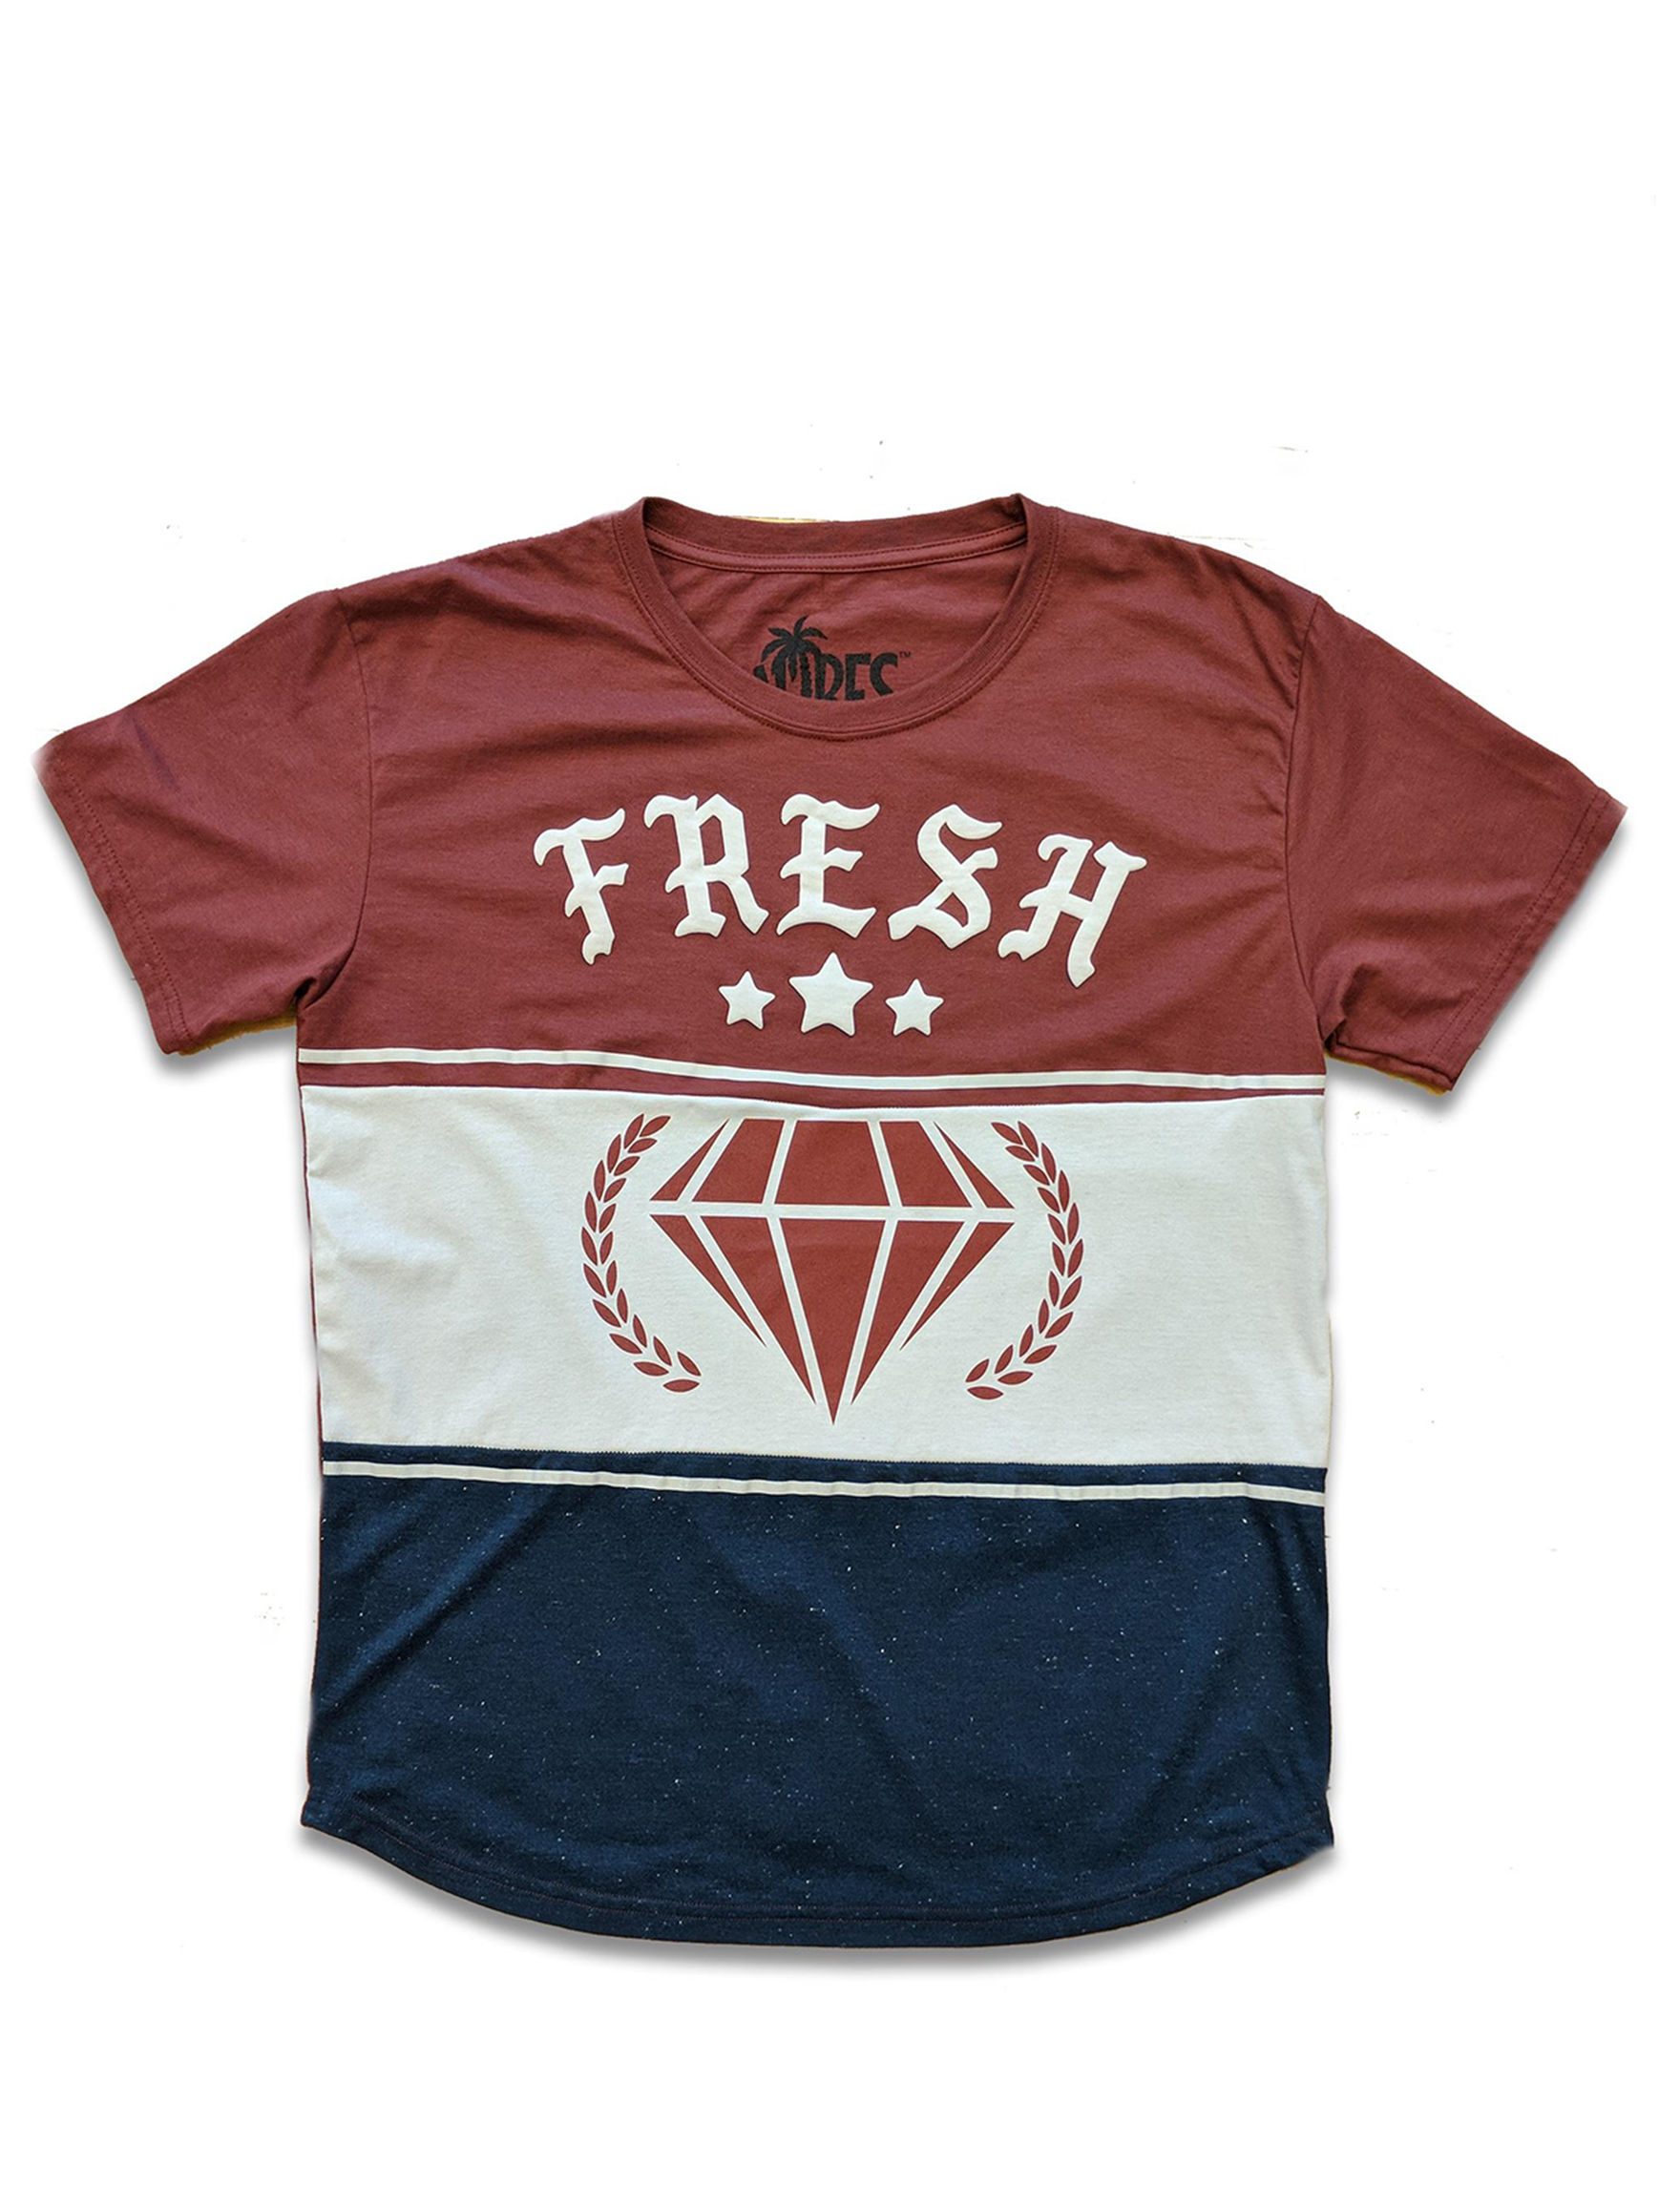 Vibes Red / White / Blue Tees & Tanks